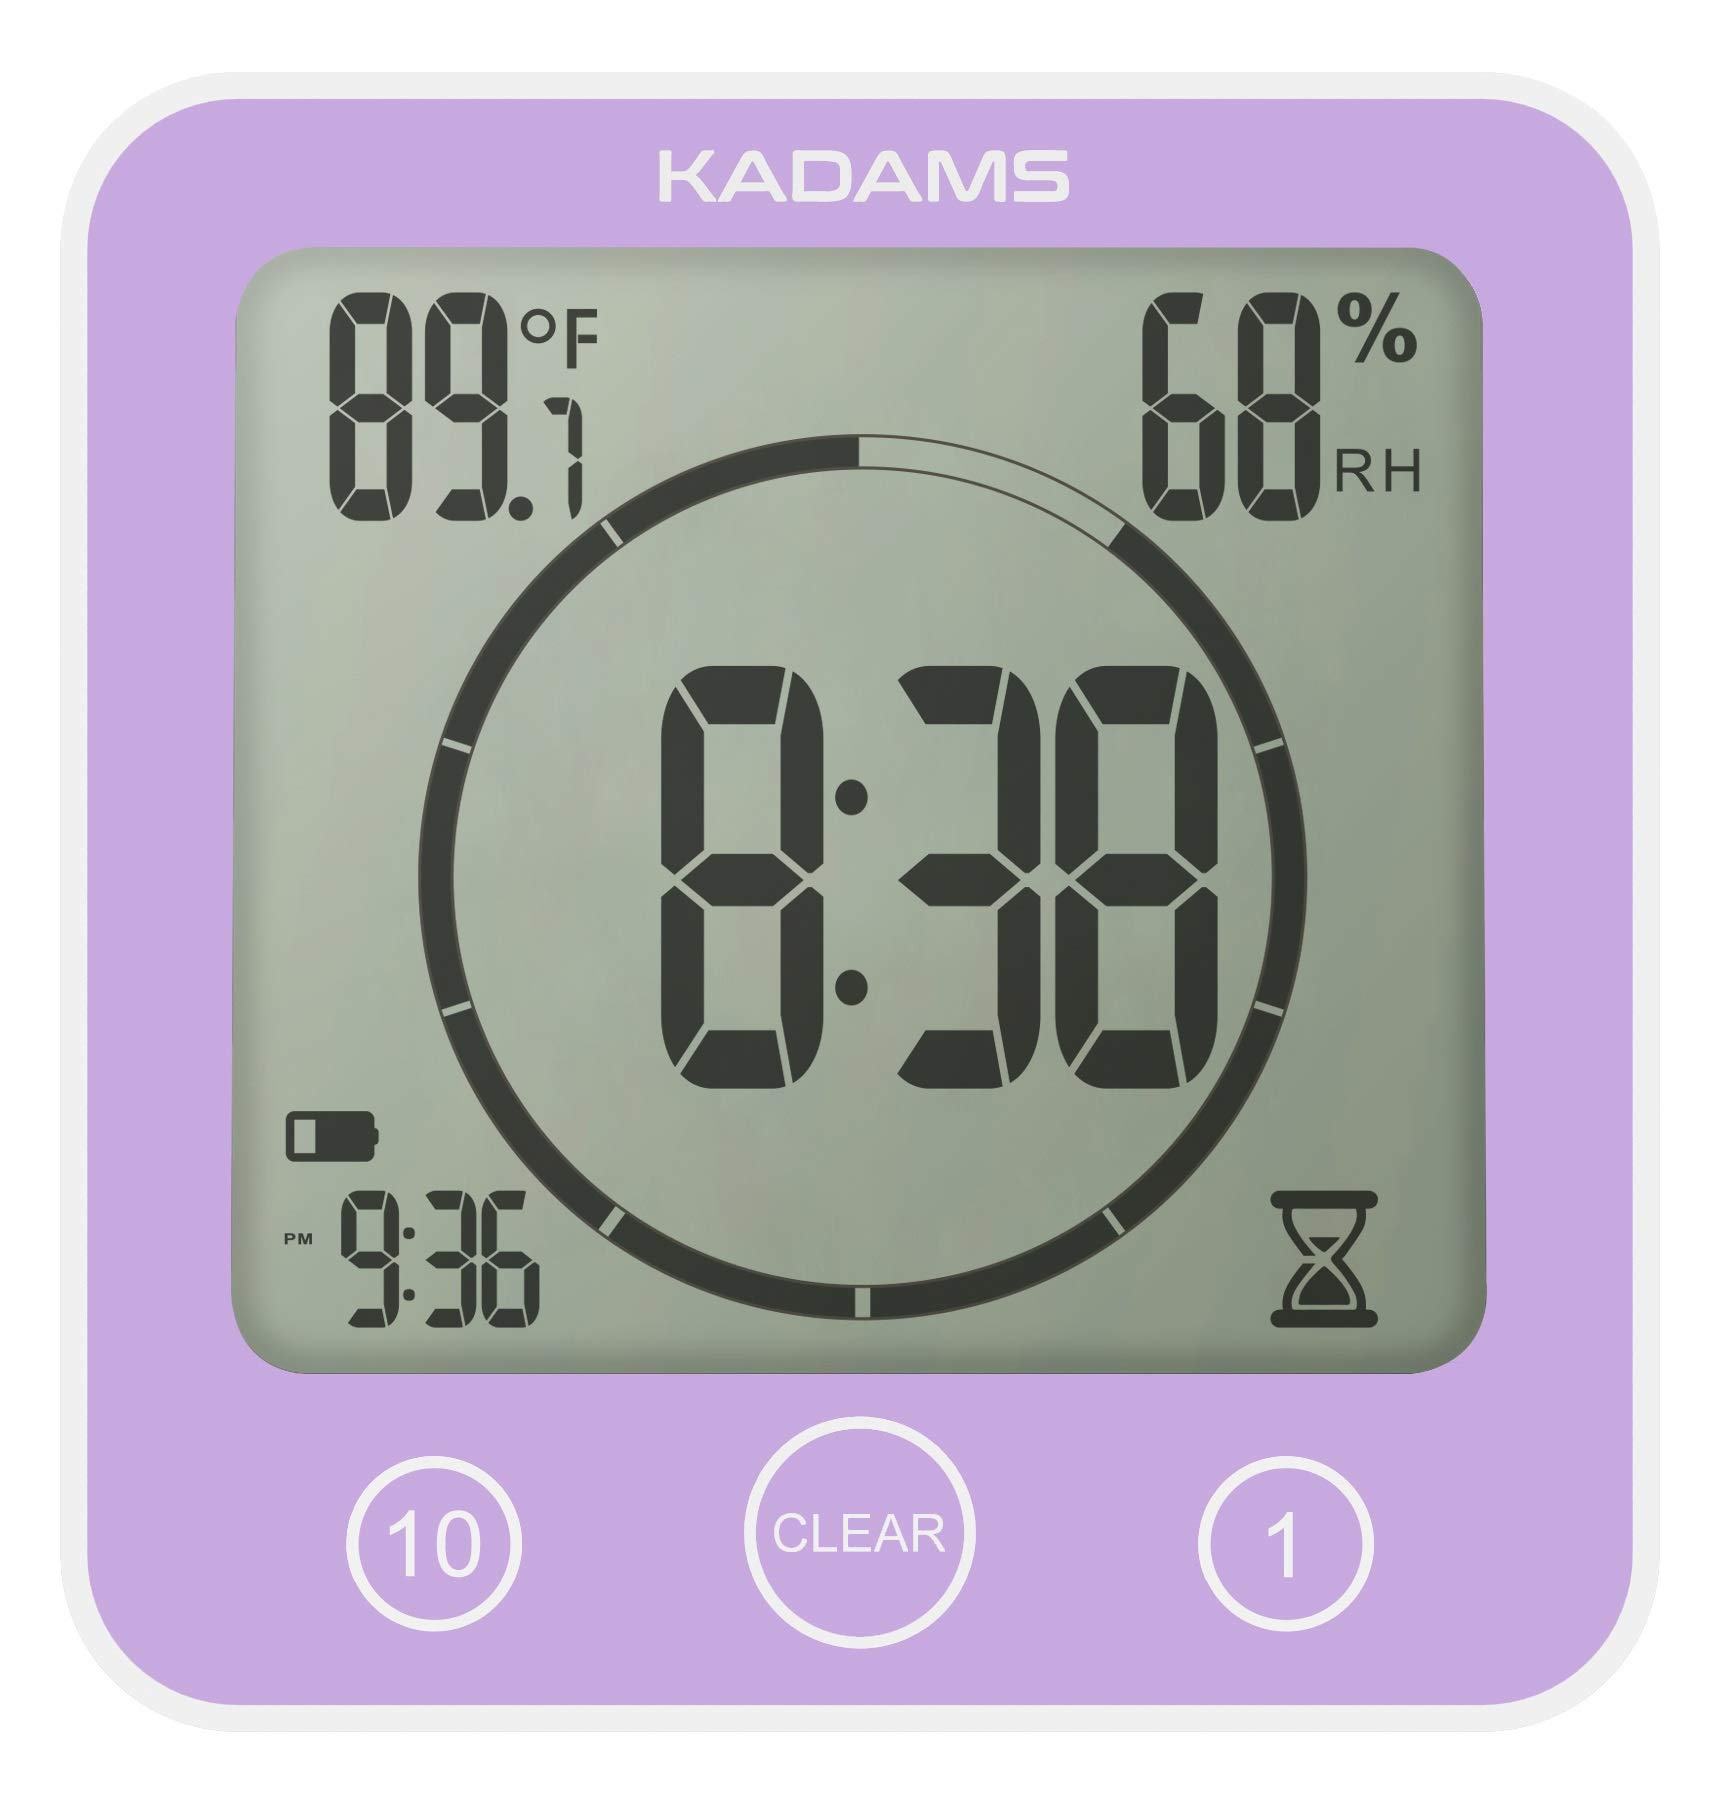 KADAMS Time Timer Countdown Clock, Visual Timer with Alarm, Digital Waterproof Wall Clock with Temperature Humidity, Time Management Tool for Classroom Teachers Bathroom Shower Kitchen for Kids Adults by KADAMS